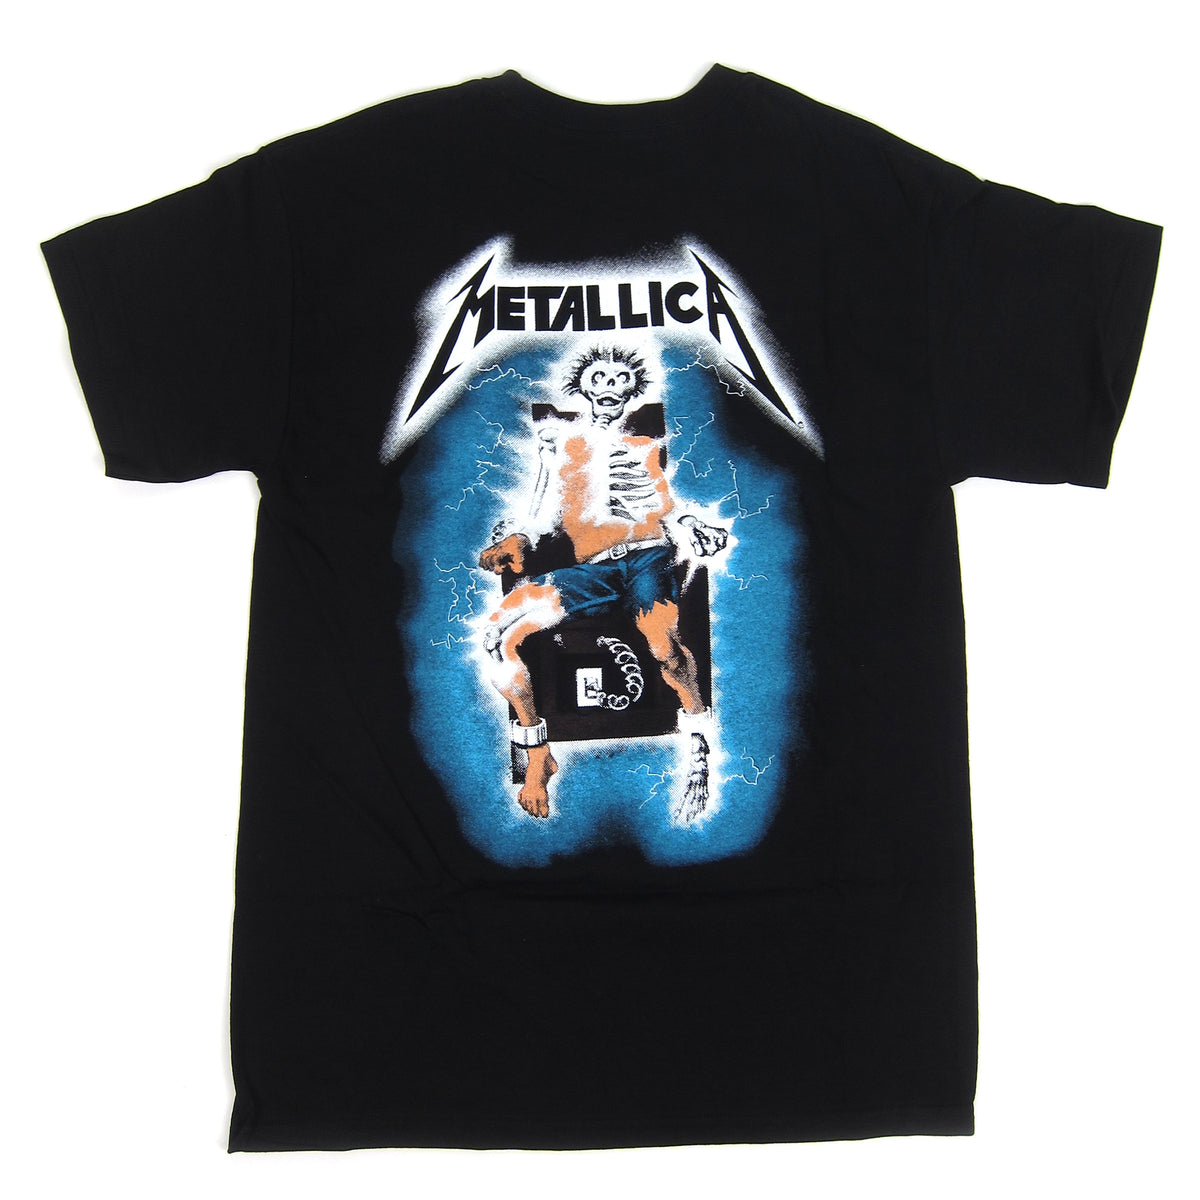 Metallica: Ride The Lightning Shirt - Black